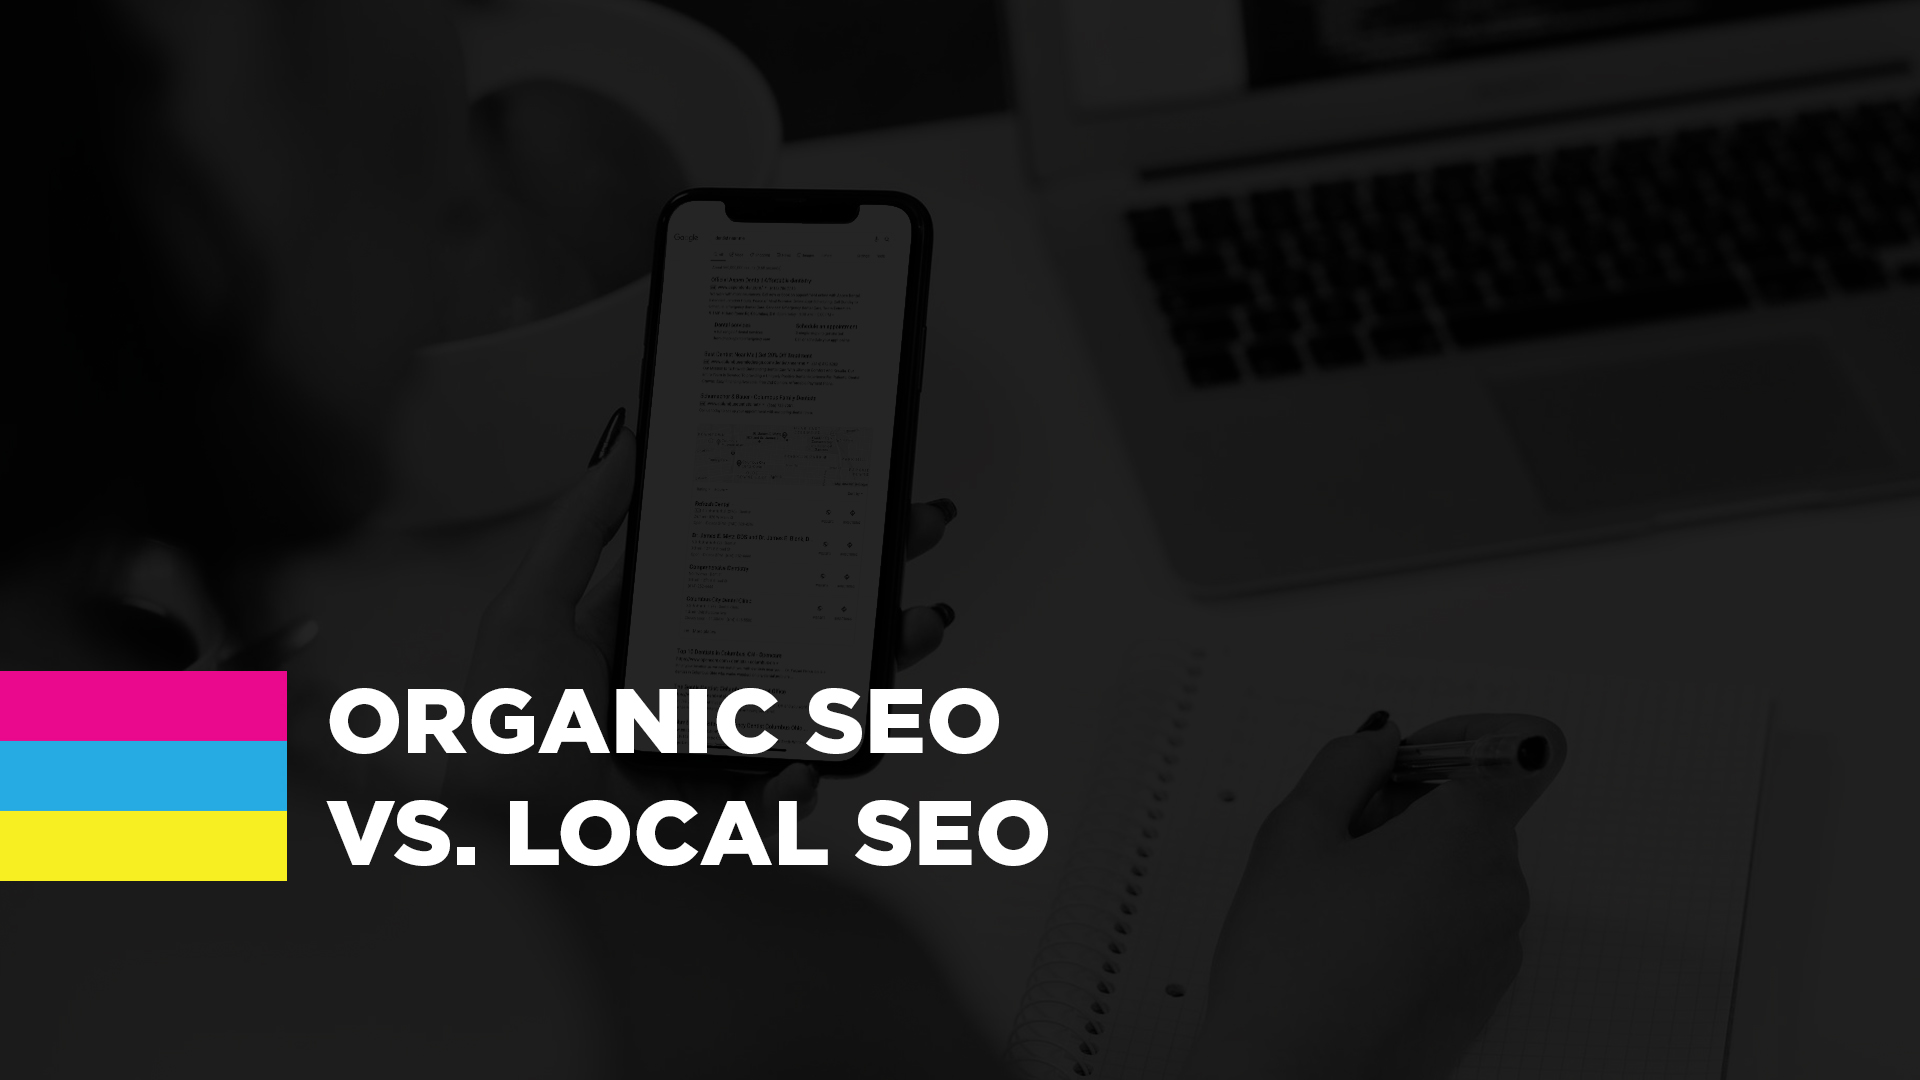 Organic SEO vs. Local SEO: What You Really Need To Know